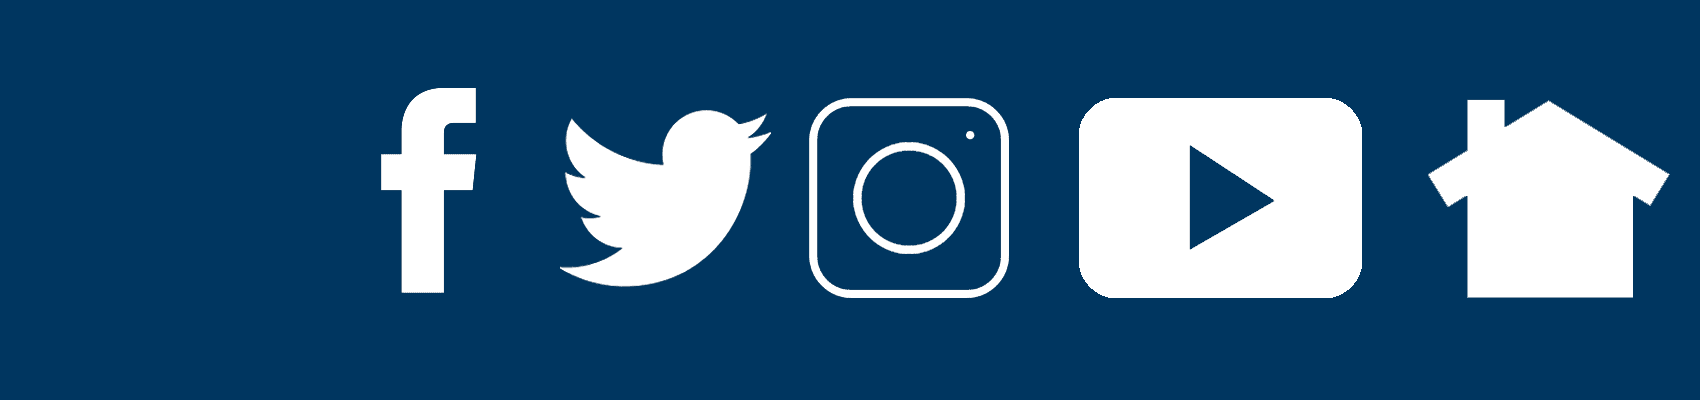 Social Media Icons in City Blue